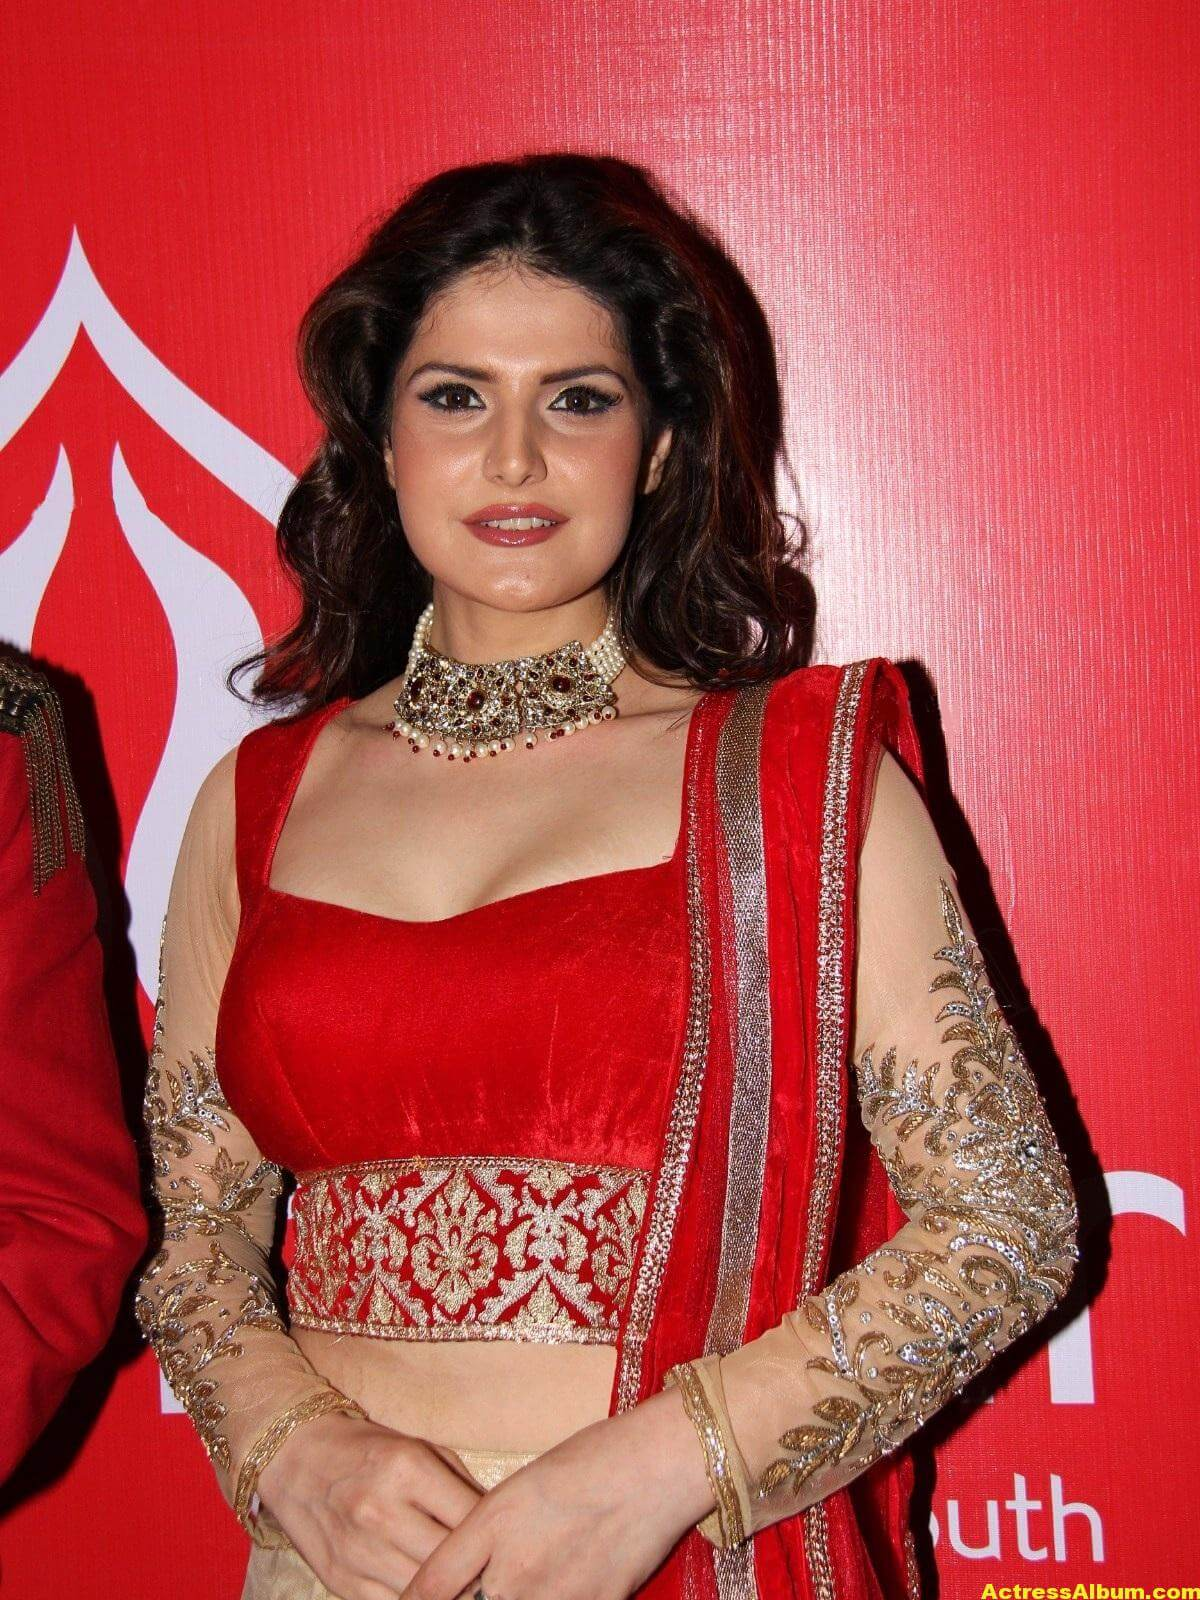 Zarine Khan Hot Photoshoot In Red Dress 5